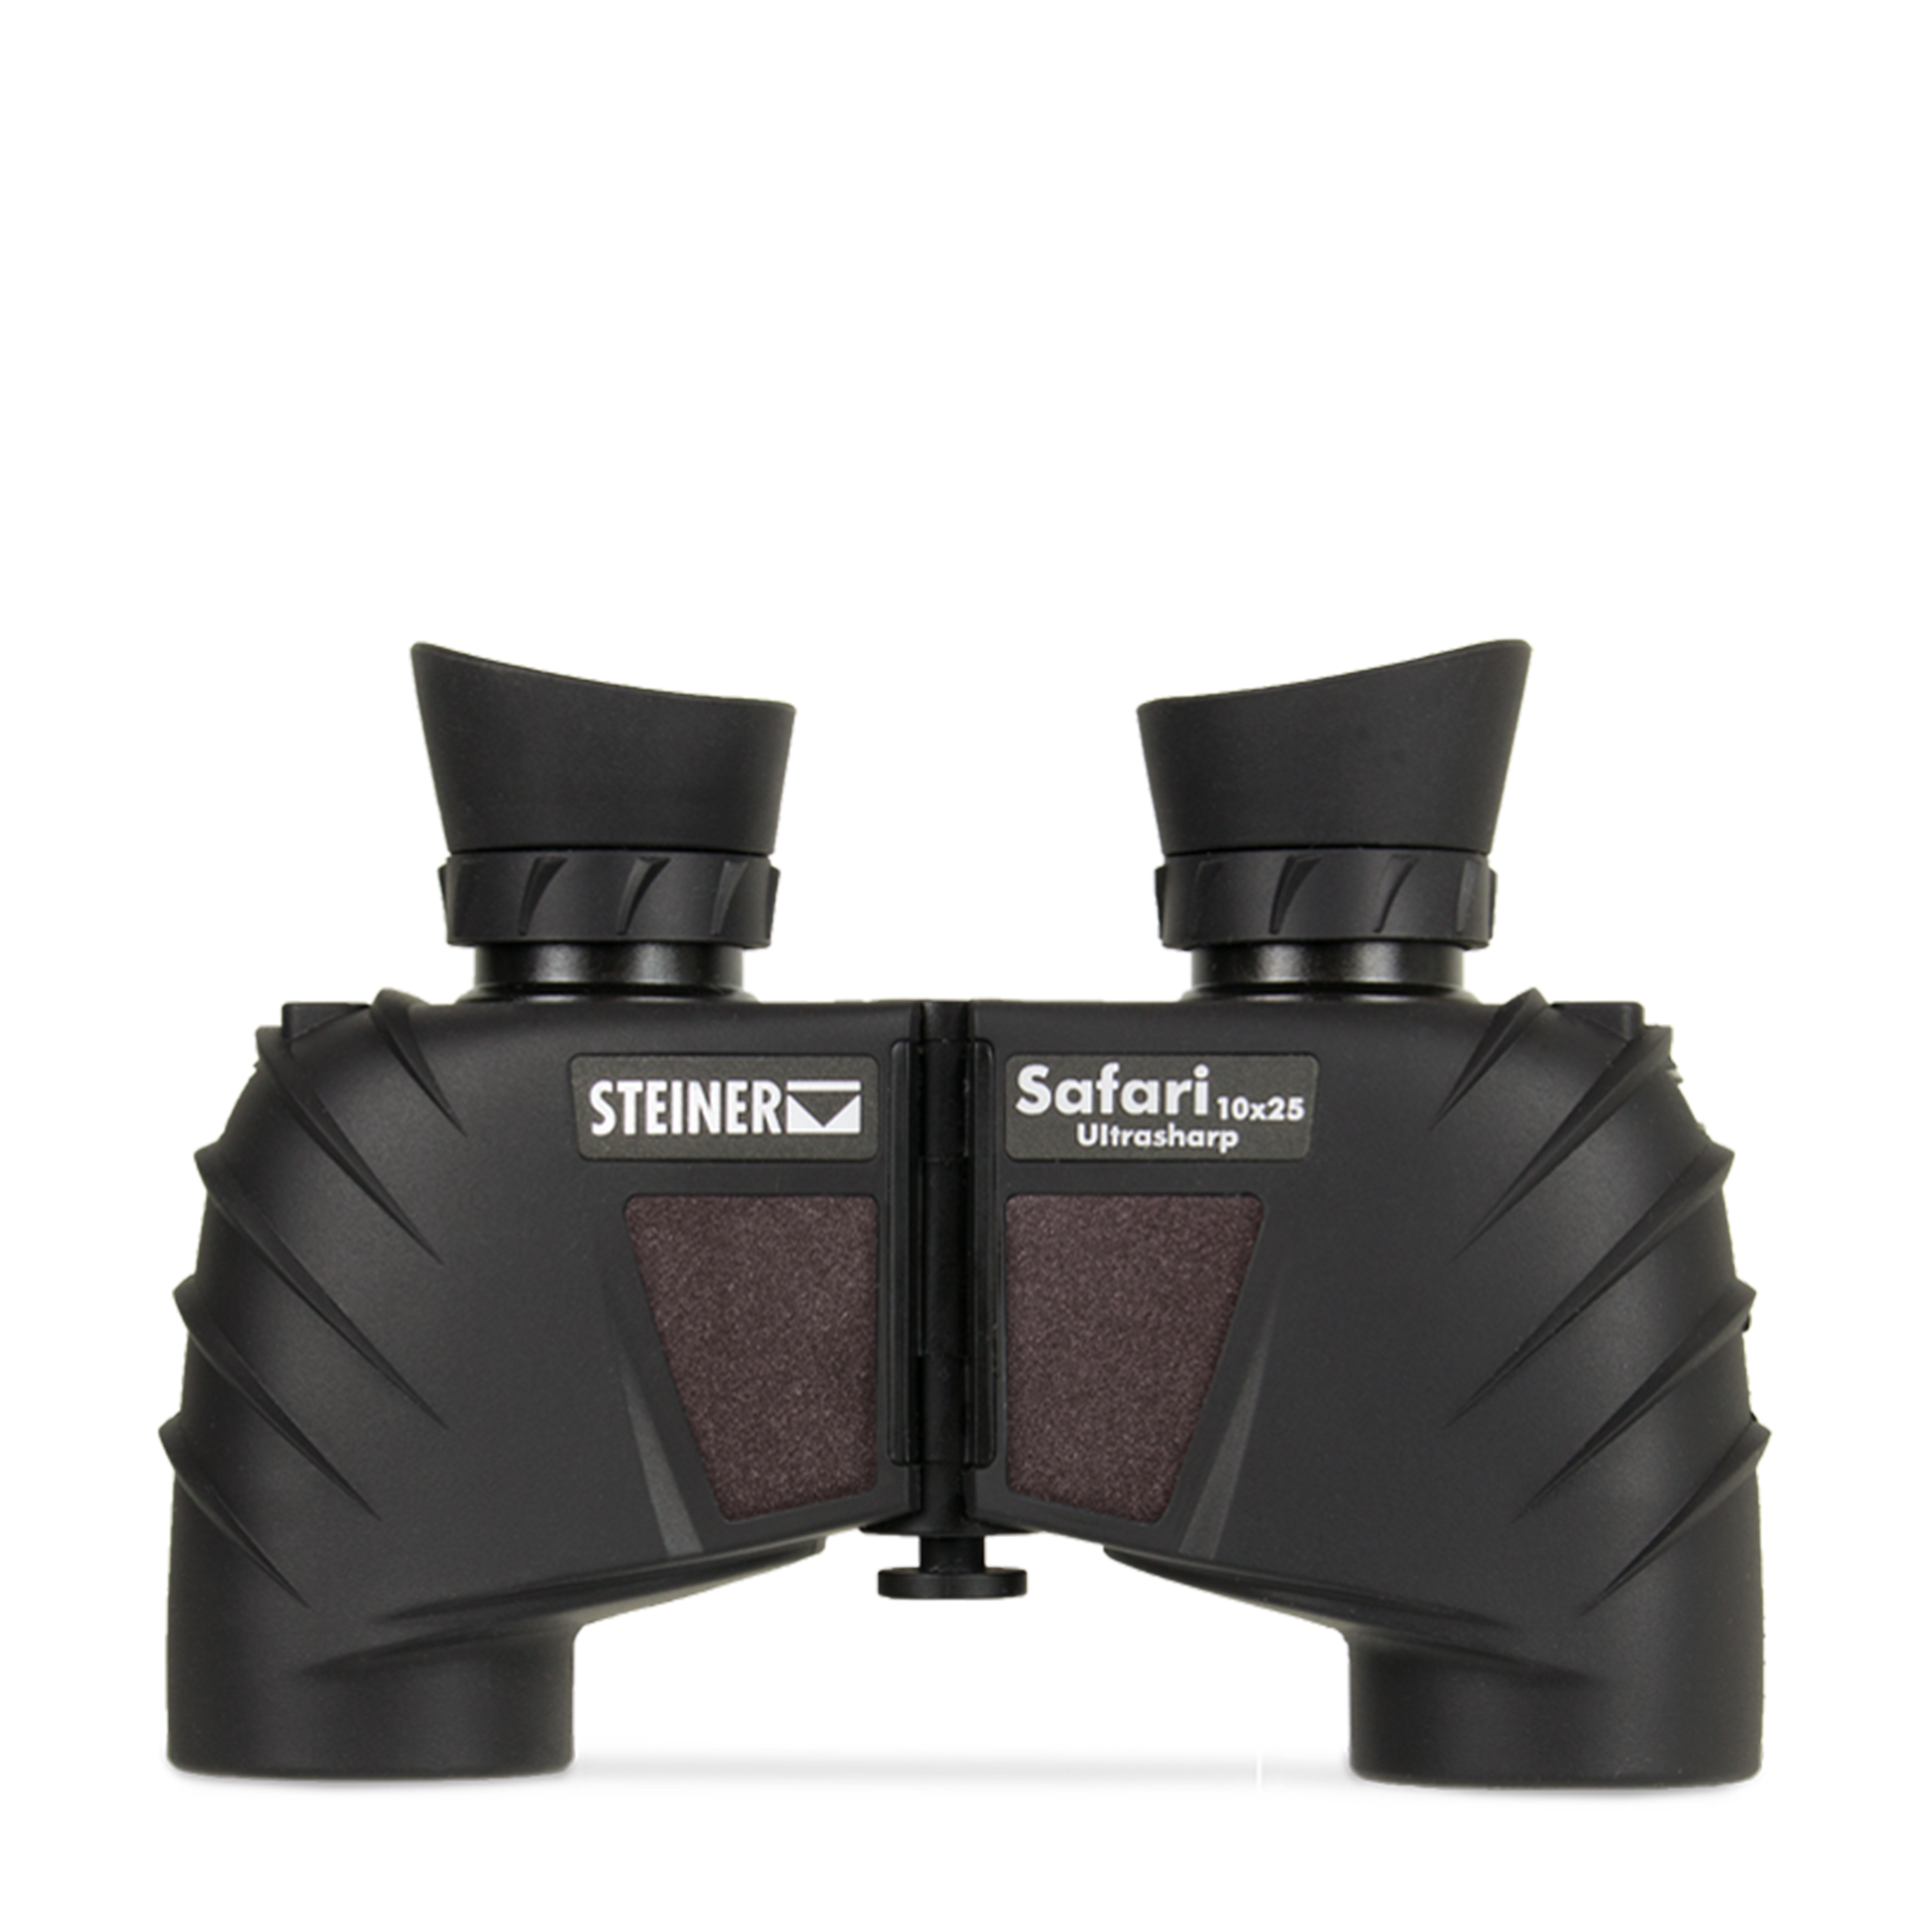 Steiner Safari Ultra Sharp 10x25 Binocular